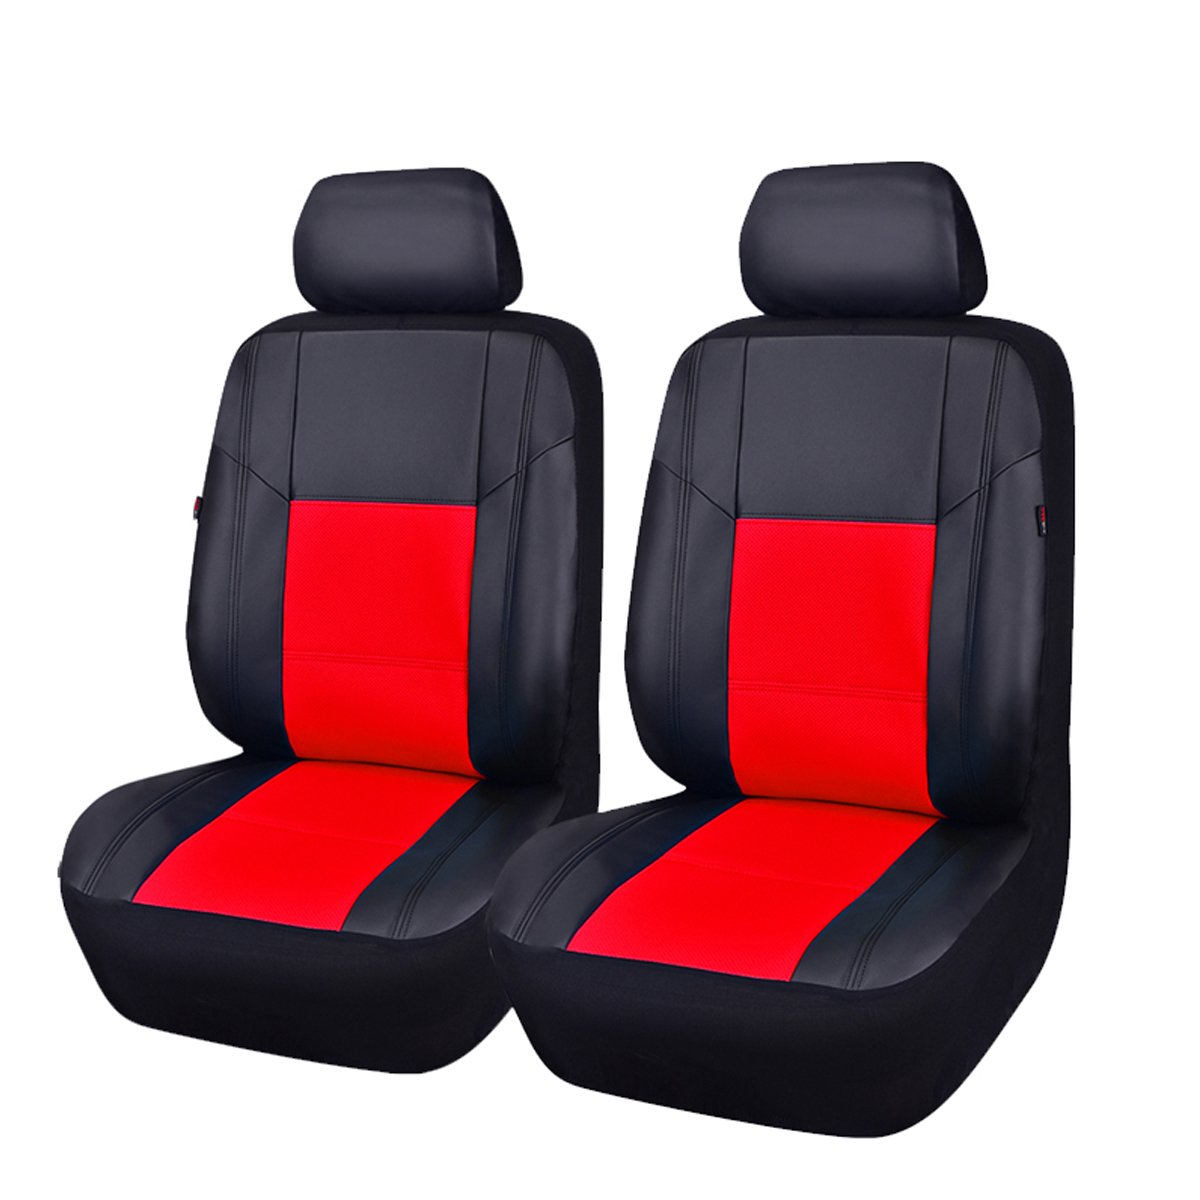 CAR PASS Skyline PU Leather CAR SEAT Covers Universal FIT for Cars,SUV,Vehicles 11PCS, Black with Cream